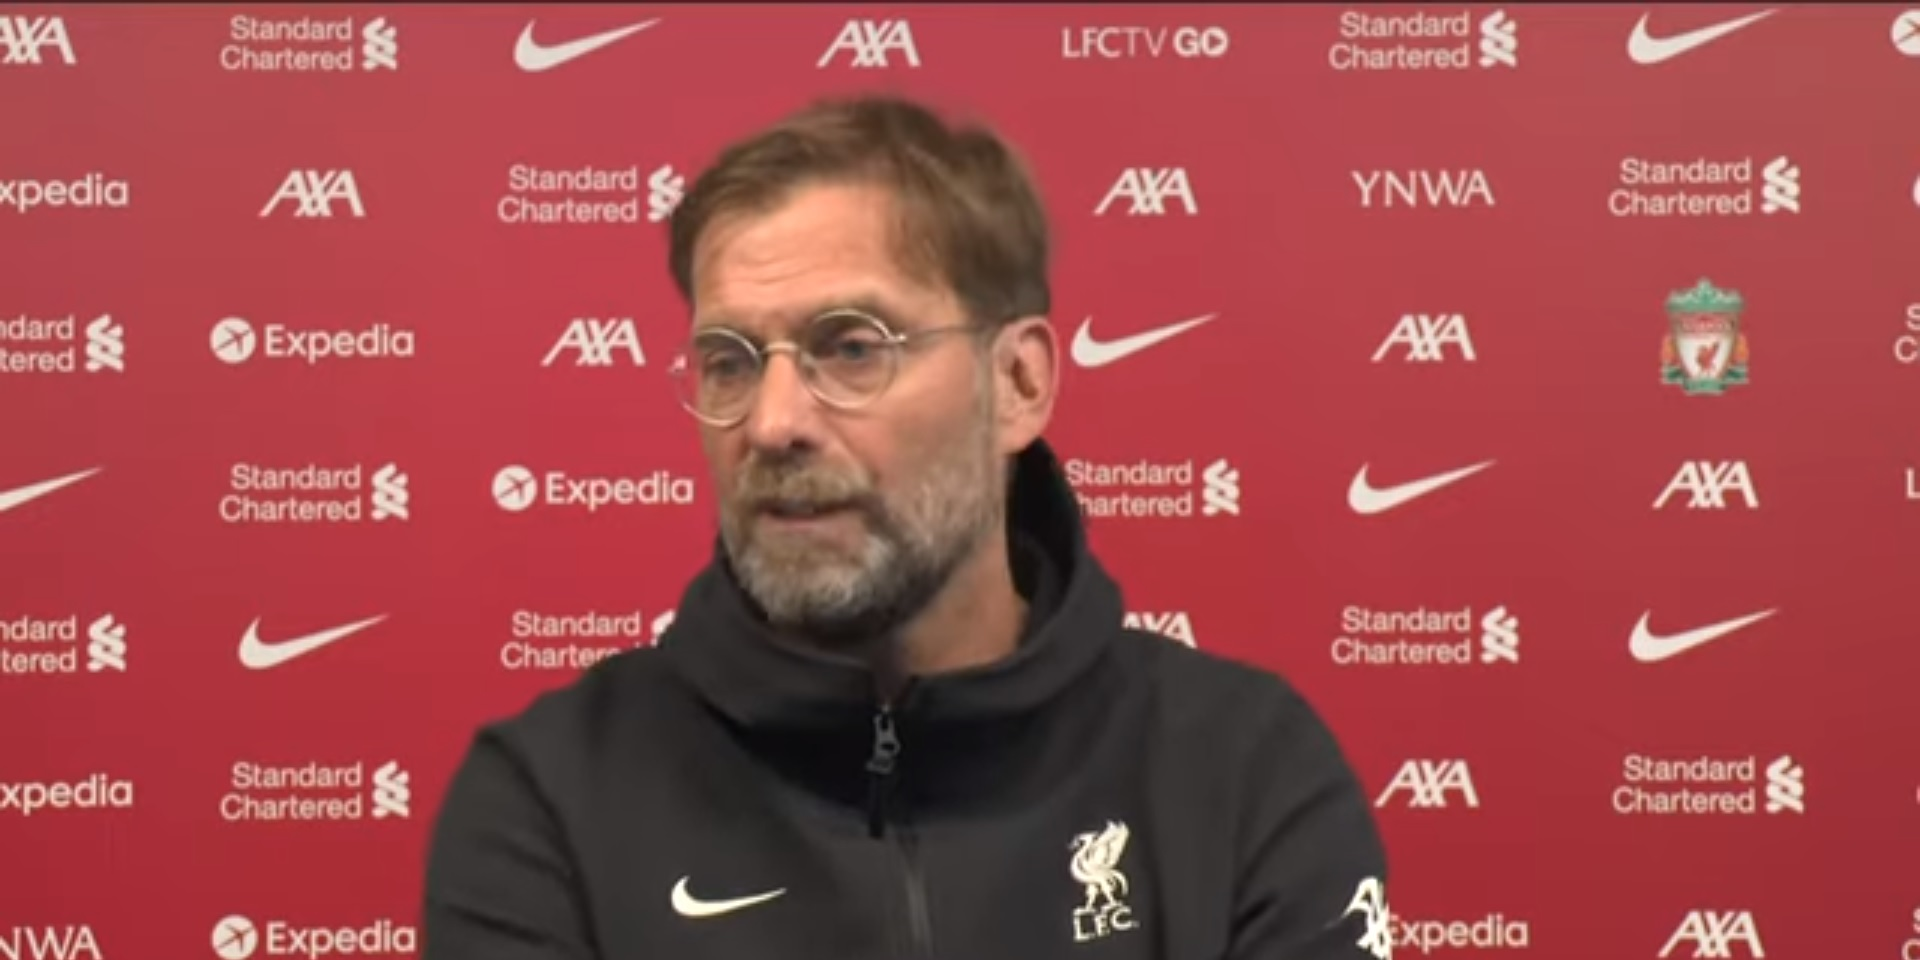 Klopp spot on in impassioned rant over fixtures as Liverpool boss rips into new UCL format